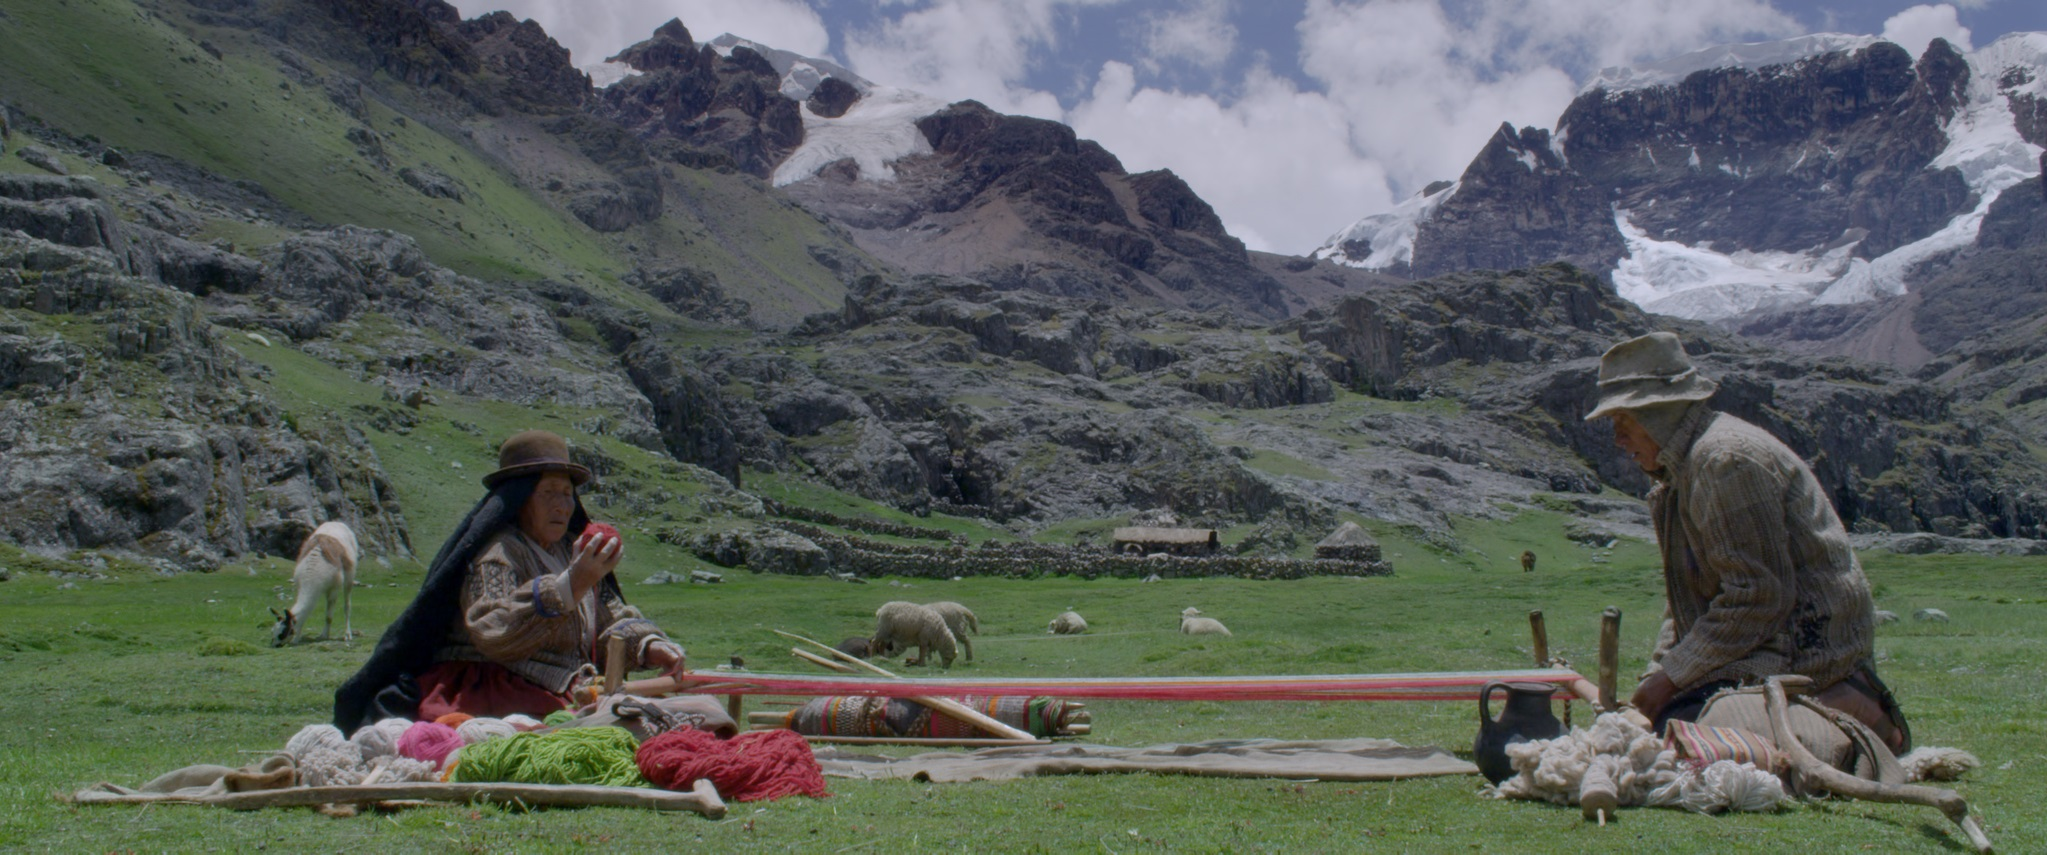 TRAILER: 'Wiñaypacha' Is the First Peruvian Movie Shot Entirely in the Aymara Language